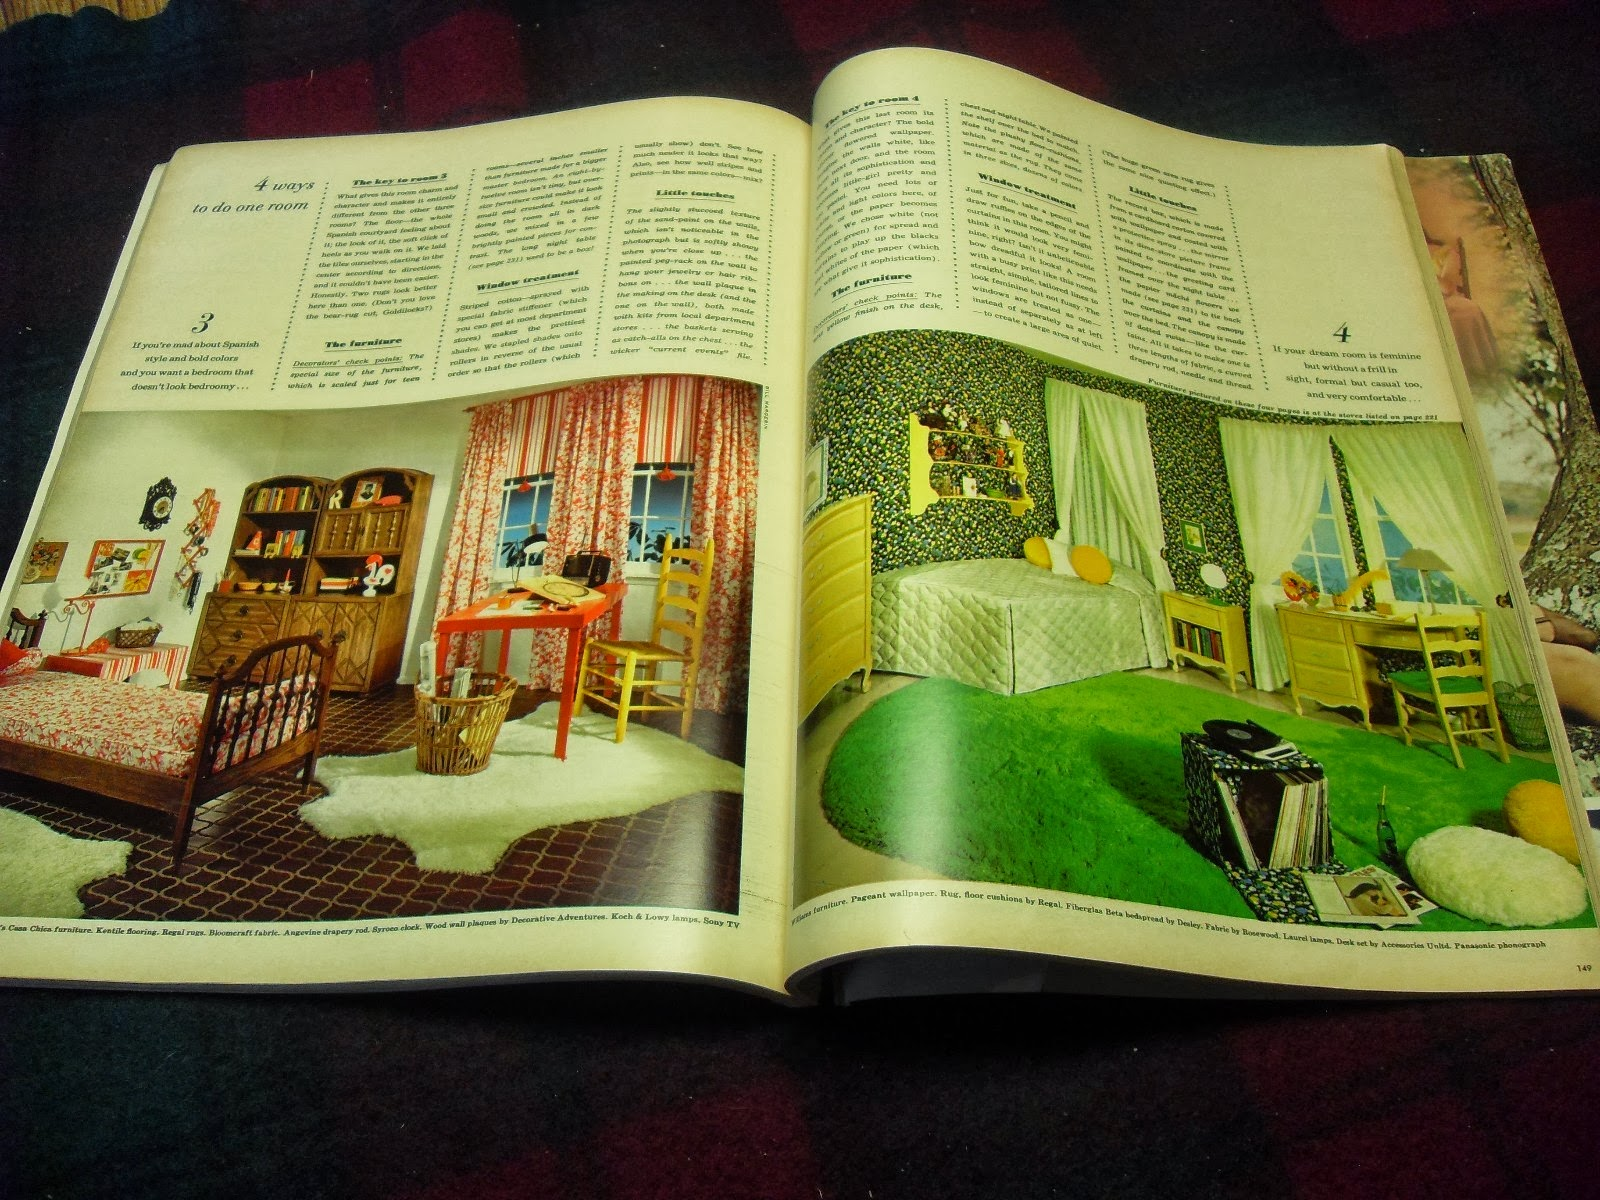 Seventeen Bedroom Gold Country Girls Bedrooms From Seventeen Magazine The 60s